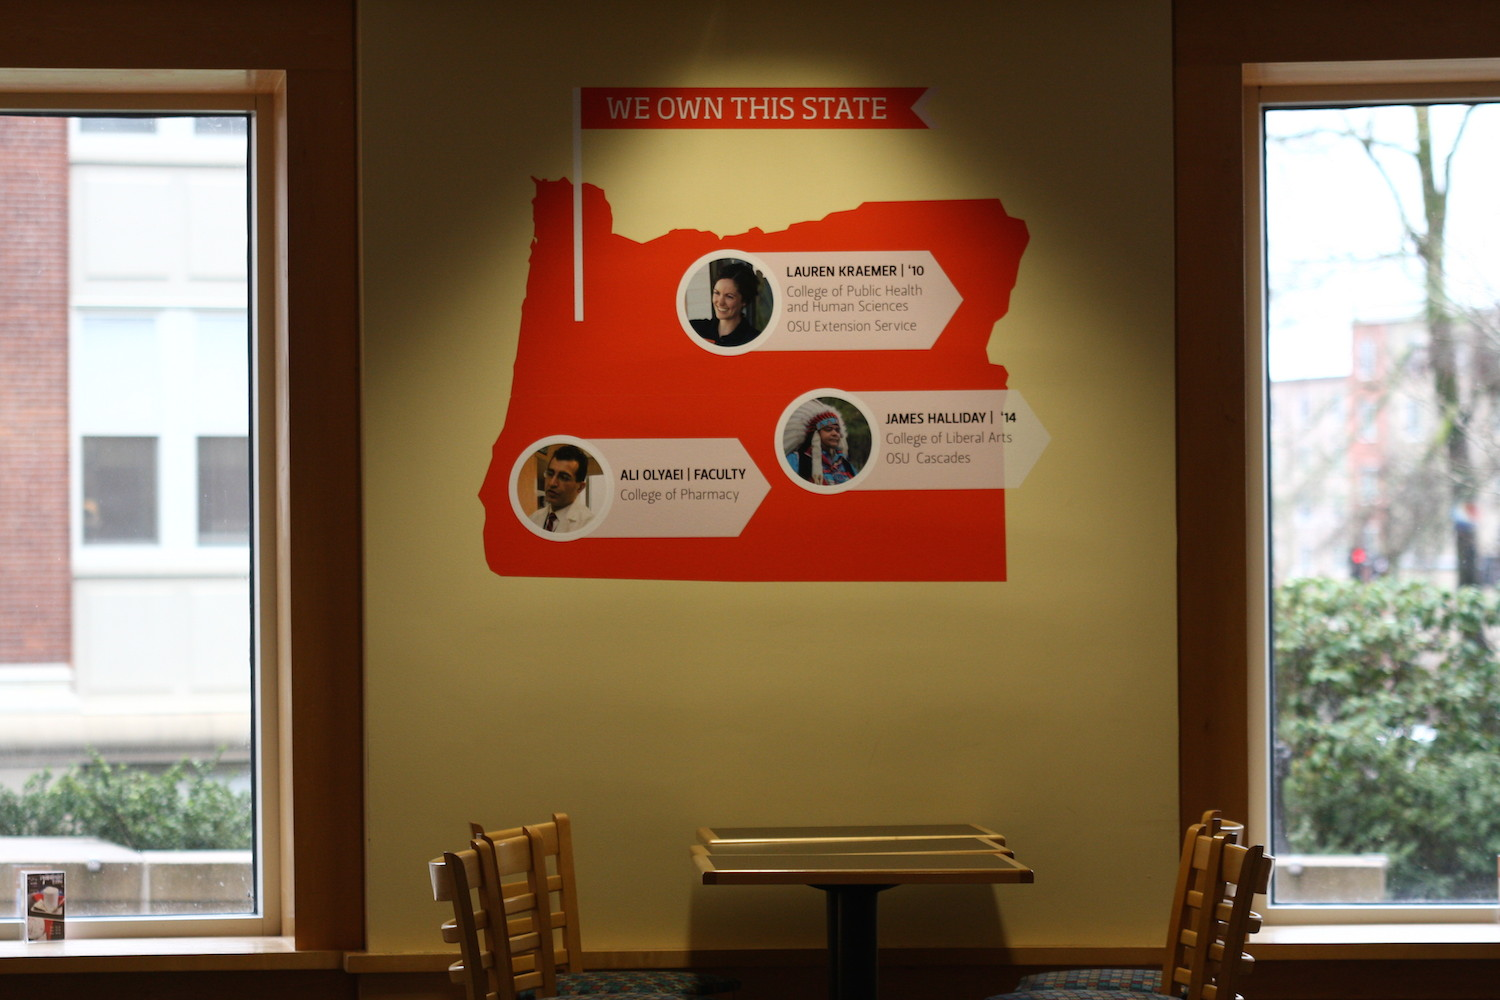 Design by OSU marketing I installed at Java II in the Valley Library on the OSU campus.